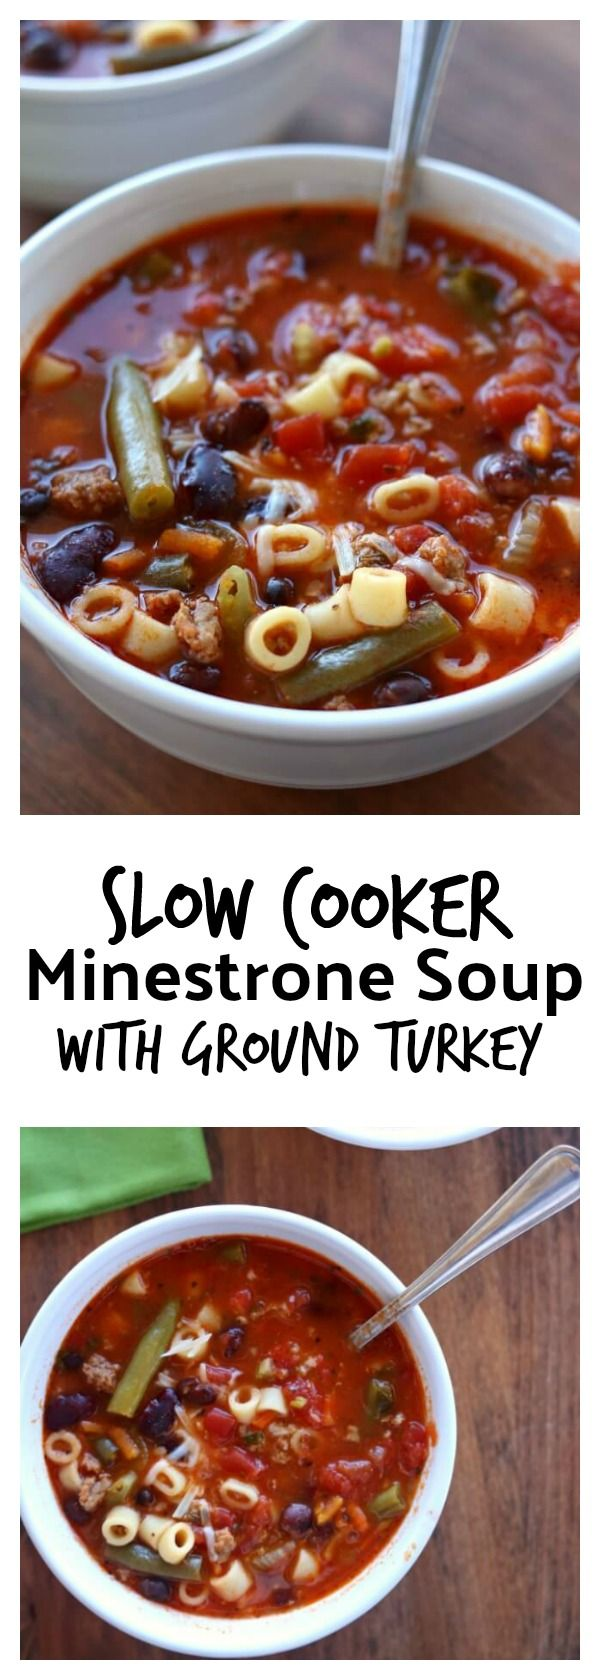 Slow Cooker (Ground Turkey) Minestrone Soup–a colorful, healthy and brightly flavored soup that is full of vegetables, basil, beans, pasta, and ground turkey. Let this soup simmer all day in your slow cooker and enjoy a warm bowl of deliciousness for dinner. #crockpot #slowcooker